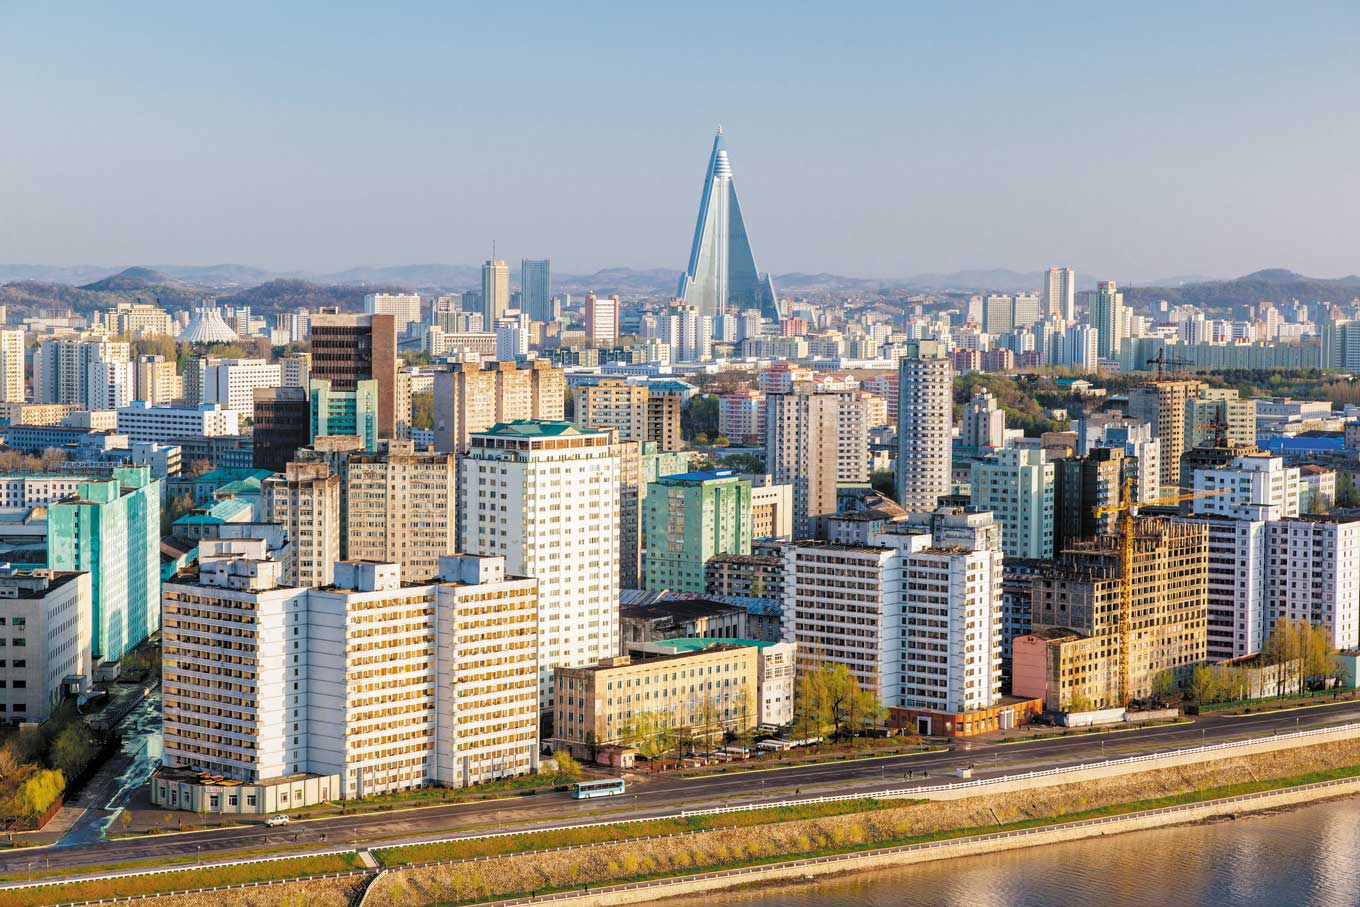 Colorful view of the skyline of Pyongyang North Korea